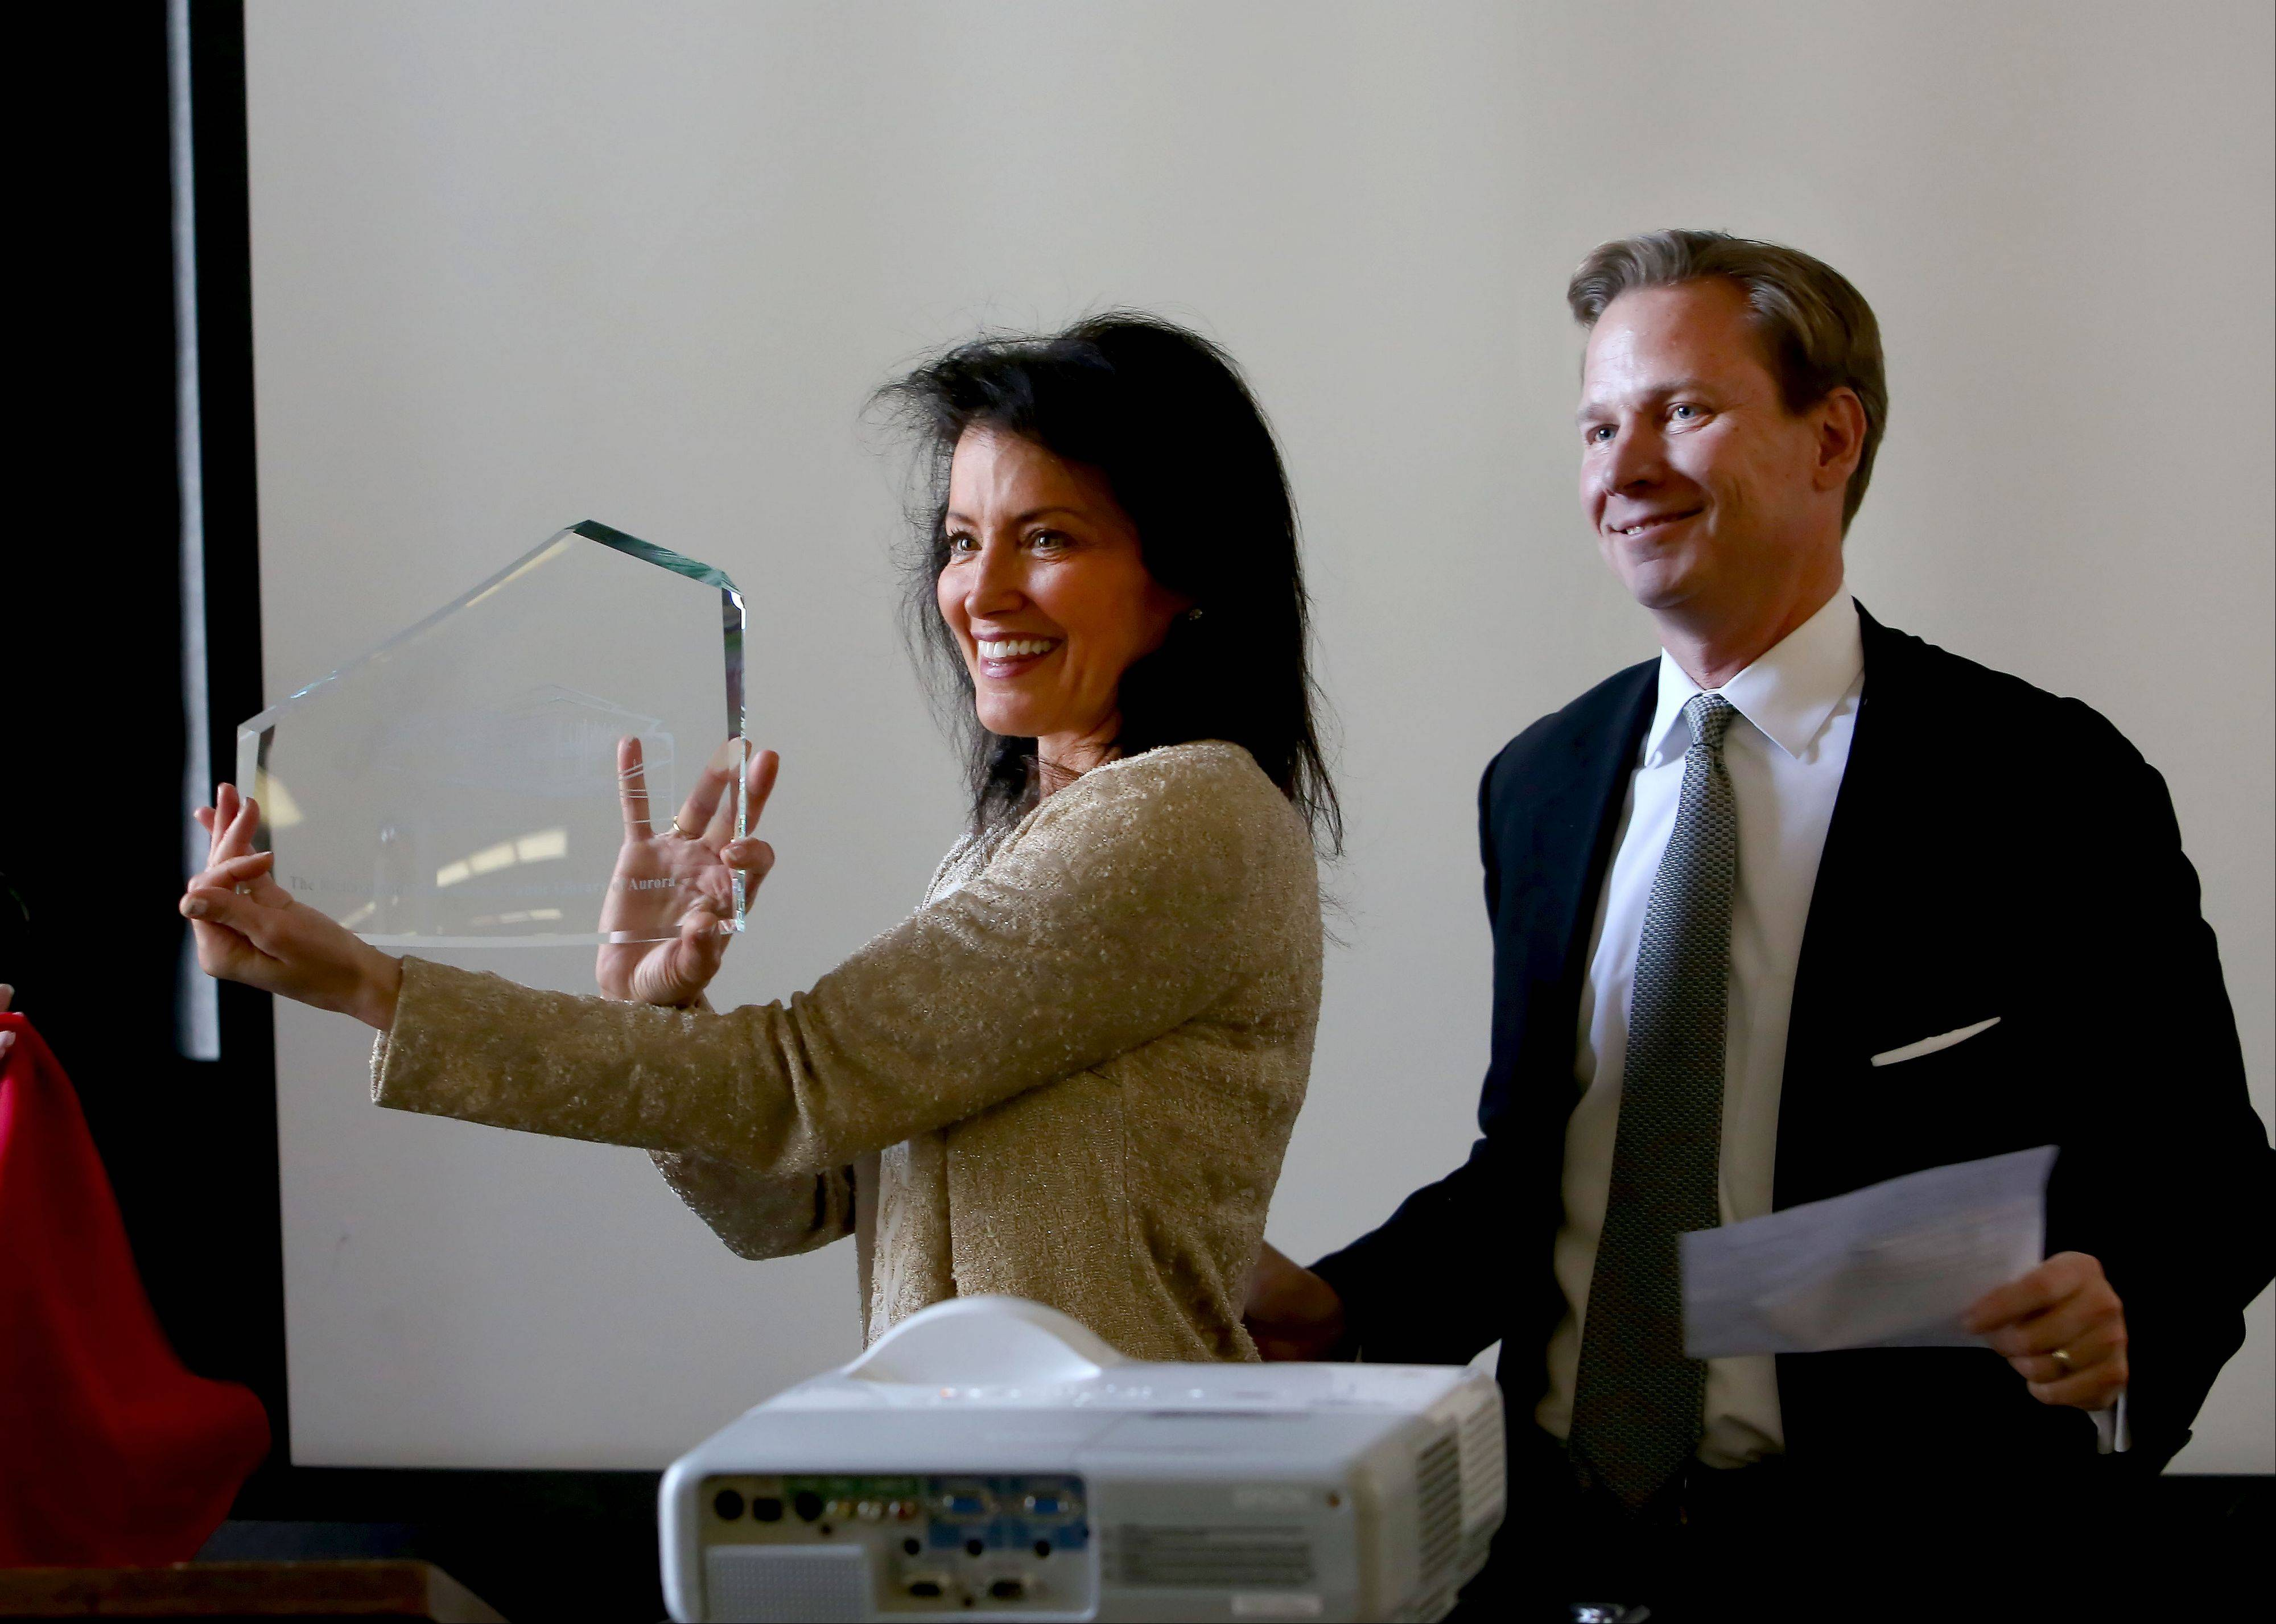 Gina Santori, with Aurora Public Library President John Savage, holds a glass replica of the proposed downtown library, given to her Monday after it was announced the Richard and Gina Santori Charitable Foundation donated $3 million to the Aurora Public Library Foundation to establish a technology endowment.